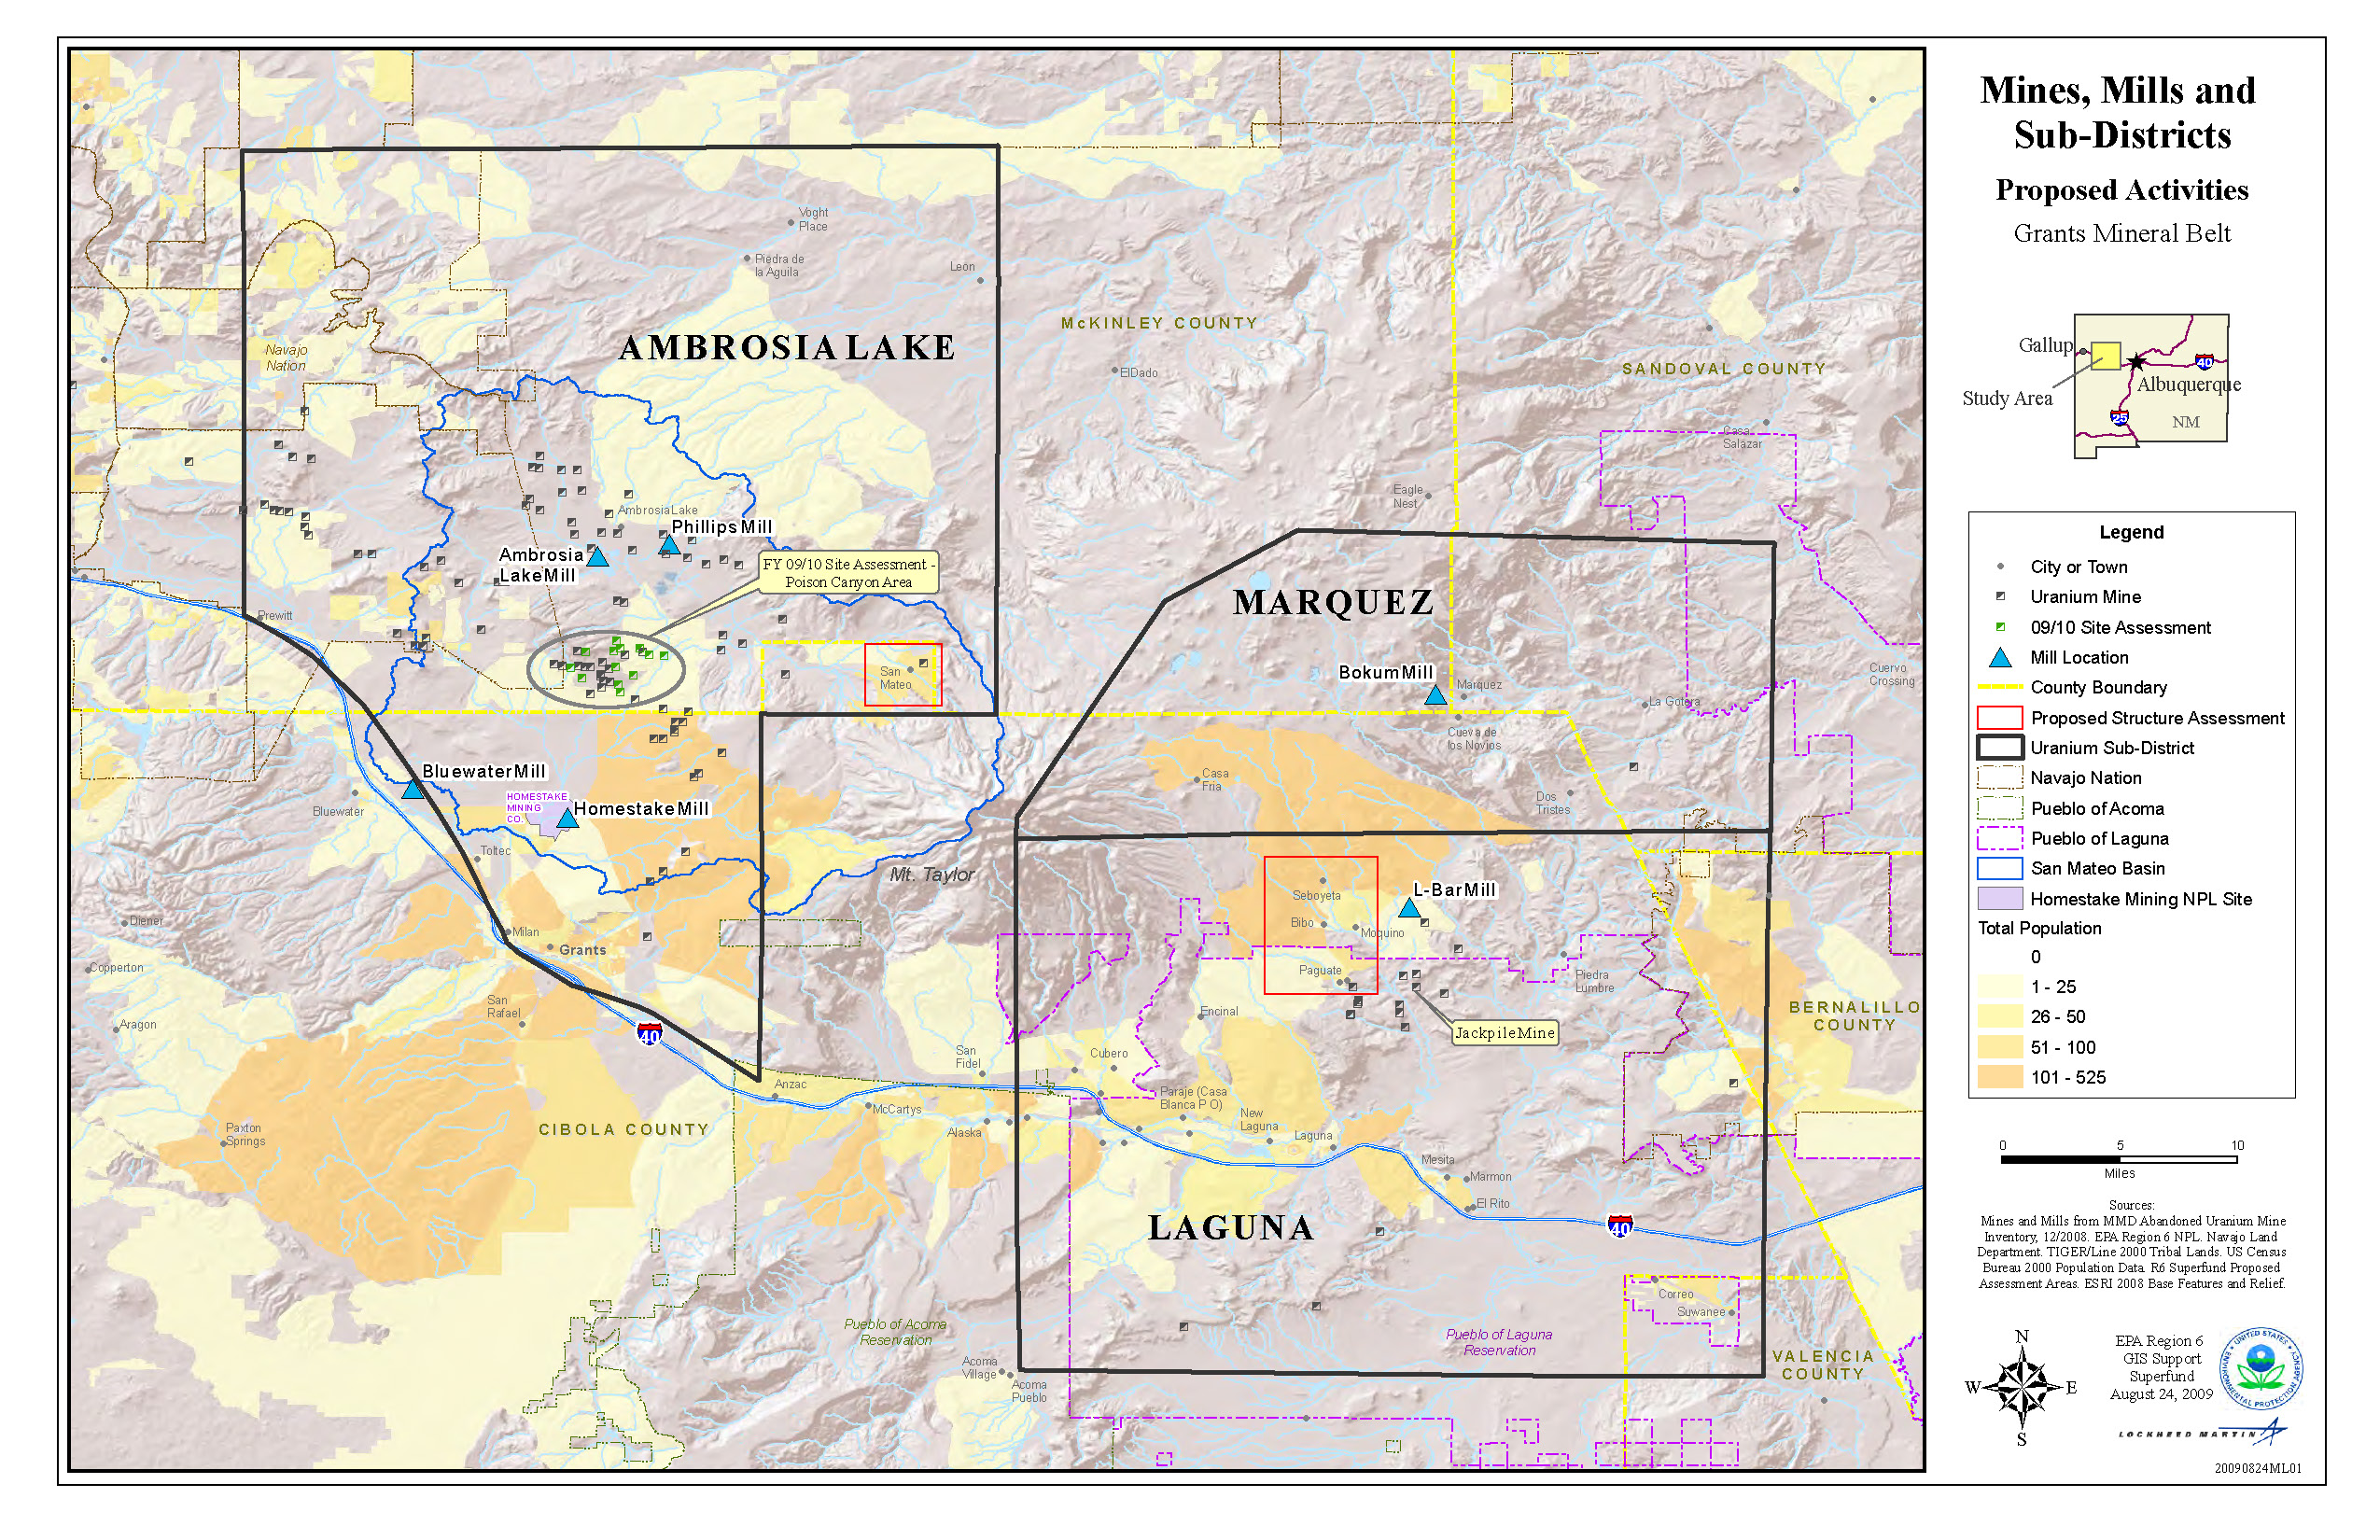 Grants Mining District in New Mexico US EPA